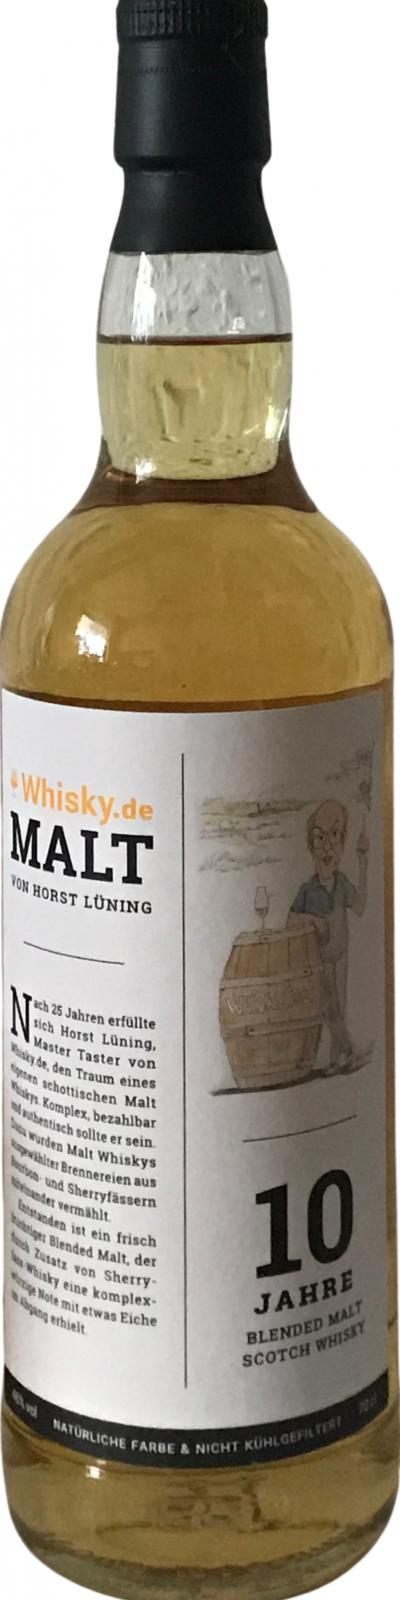 Whisky.de 10-year-old ADD